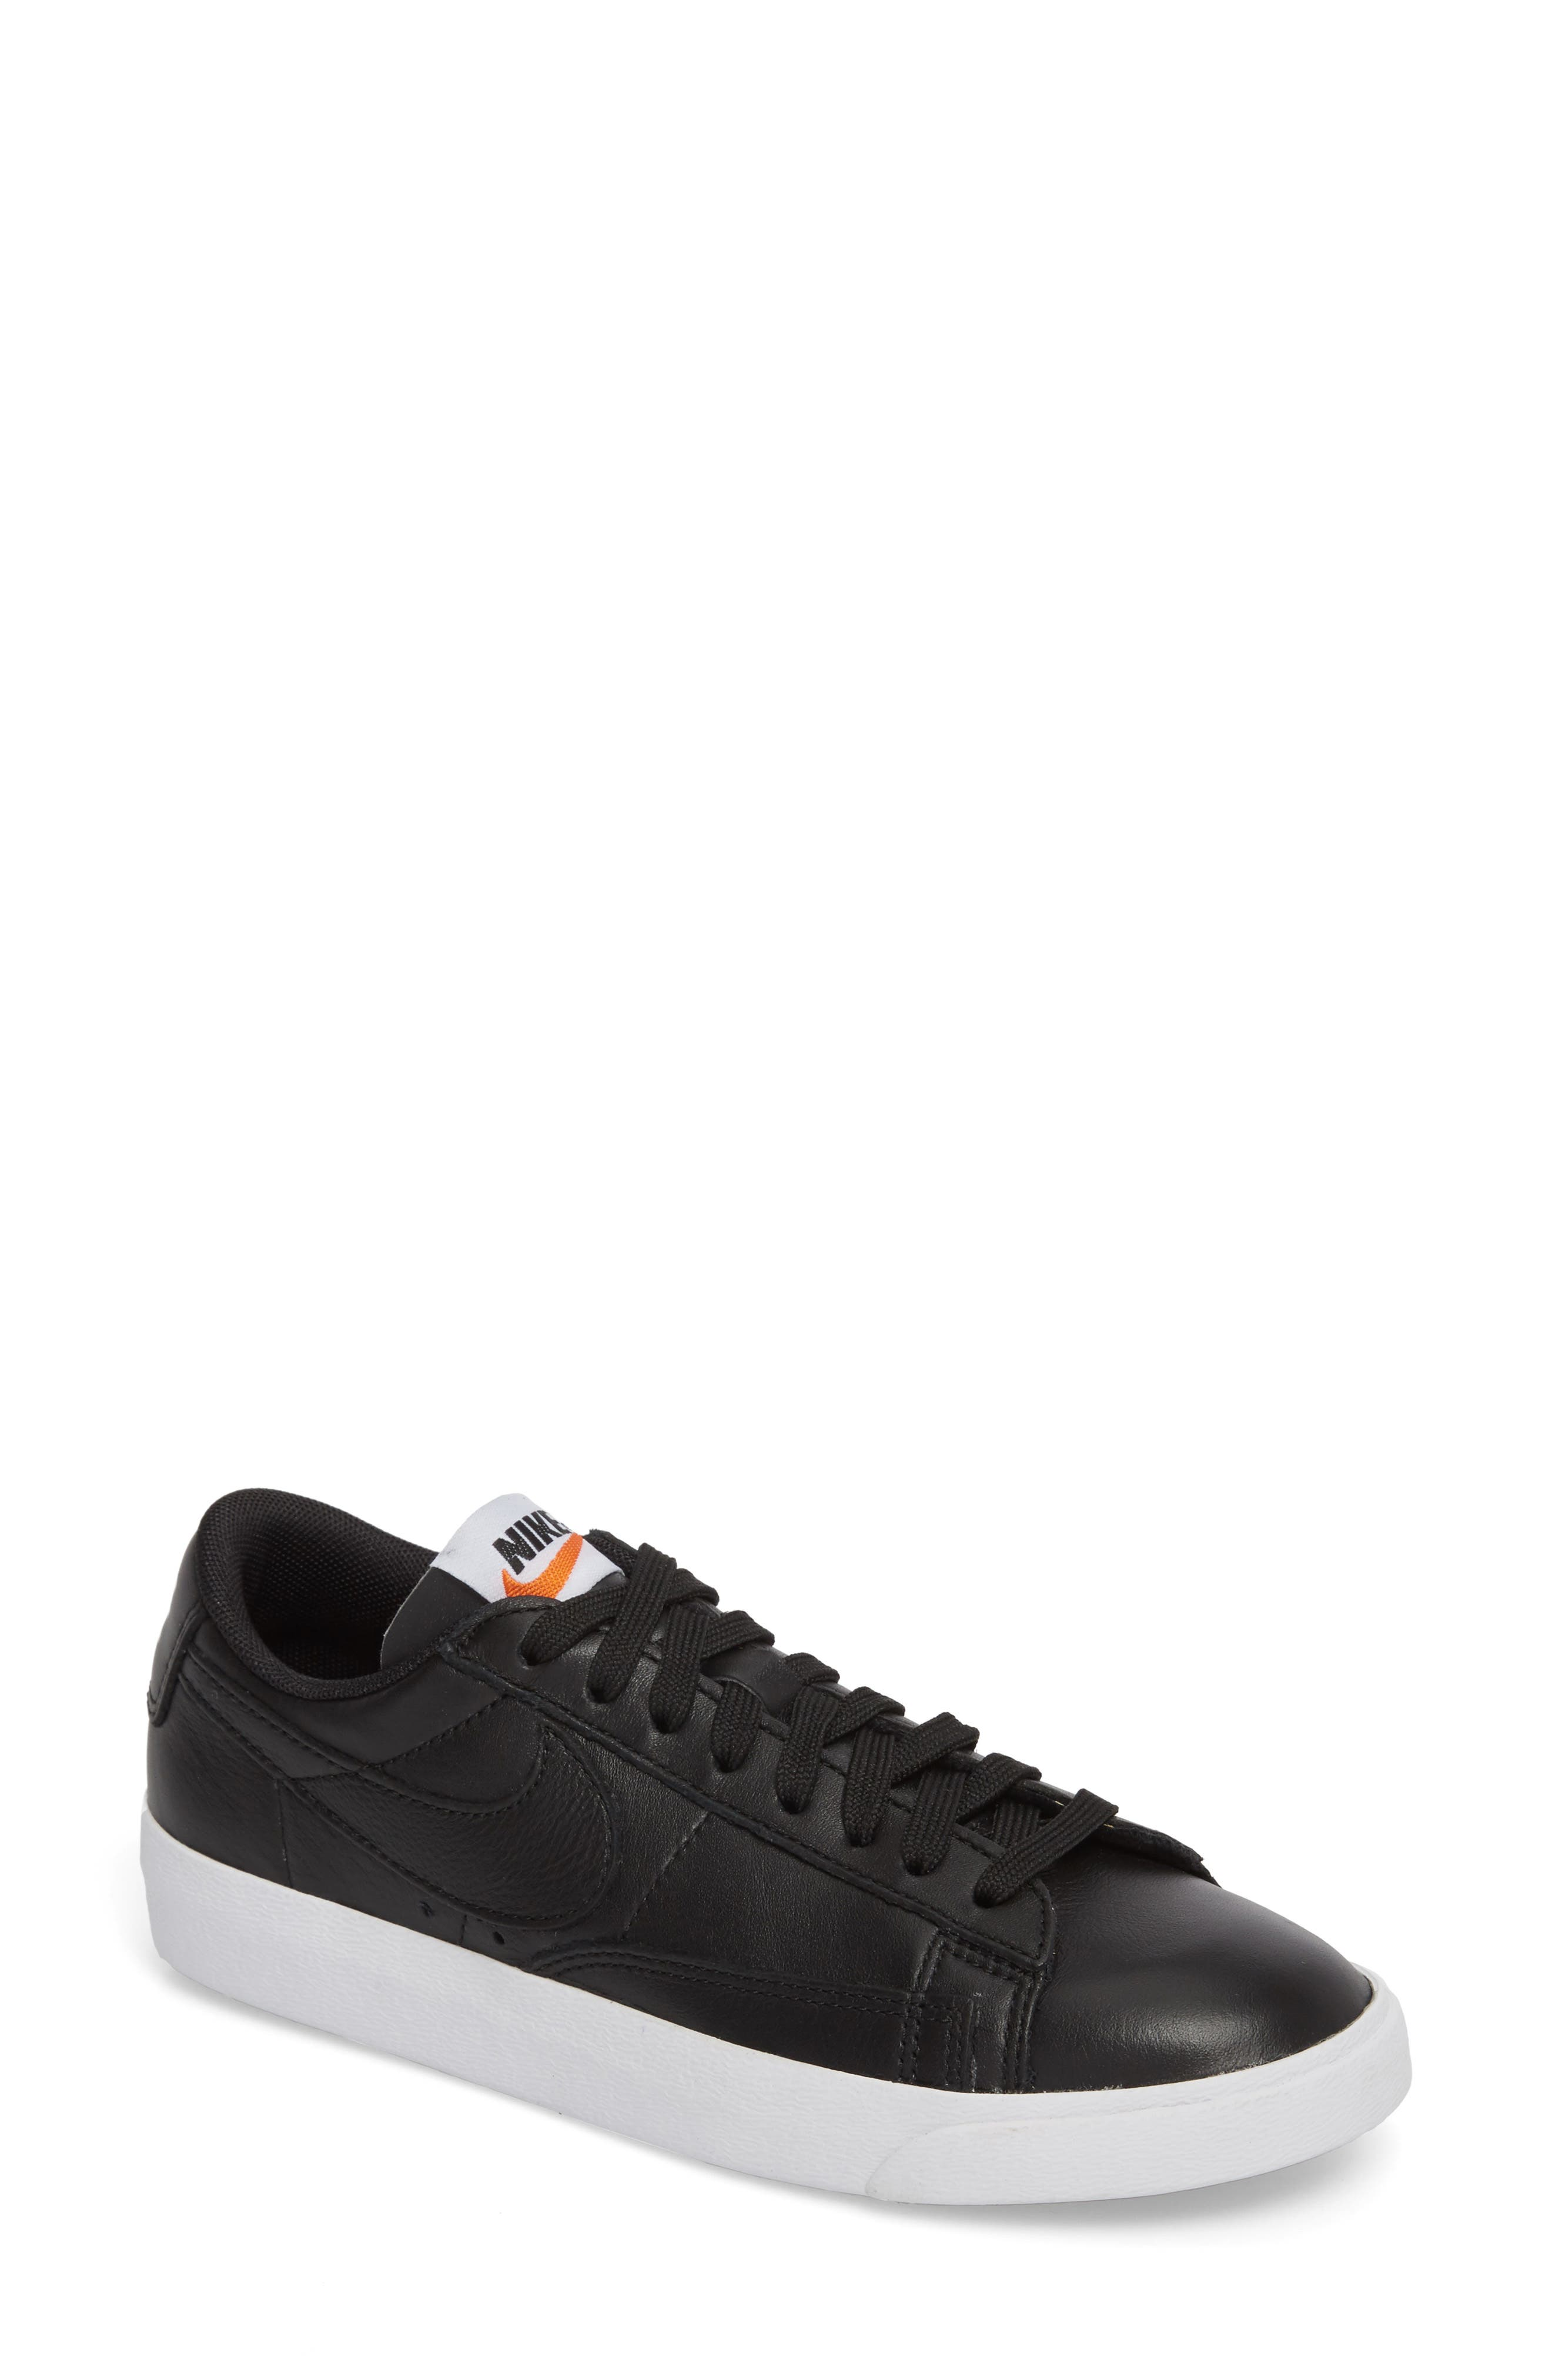 Blazer Low LE Basketball Shoe,                             Main thumbnail 1, color,                             Black/ Black/ White